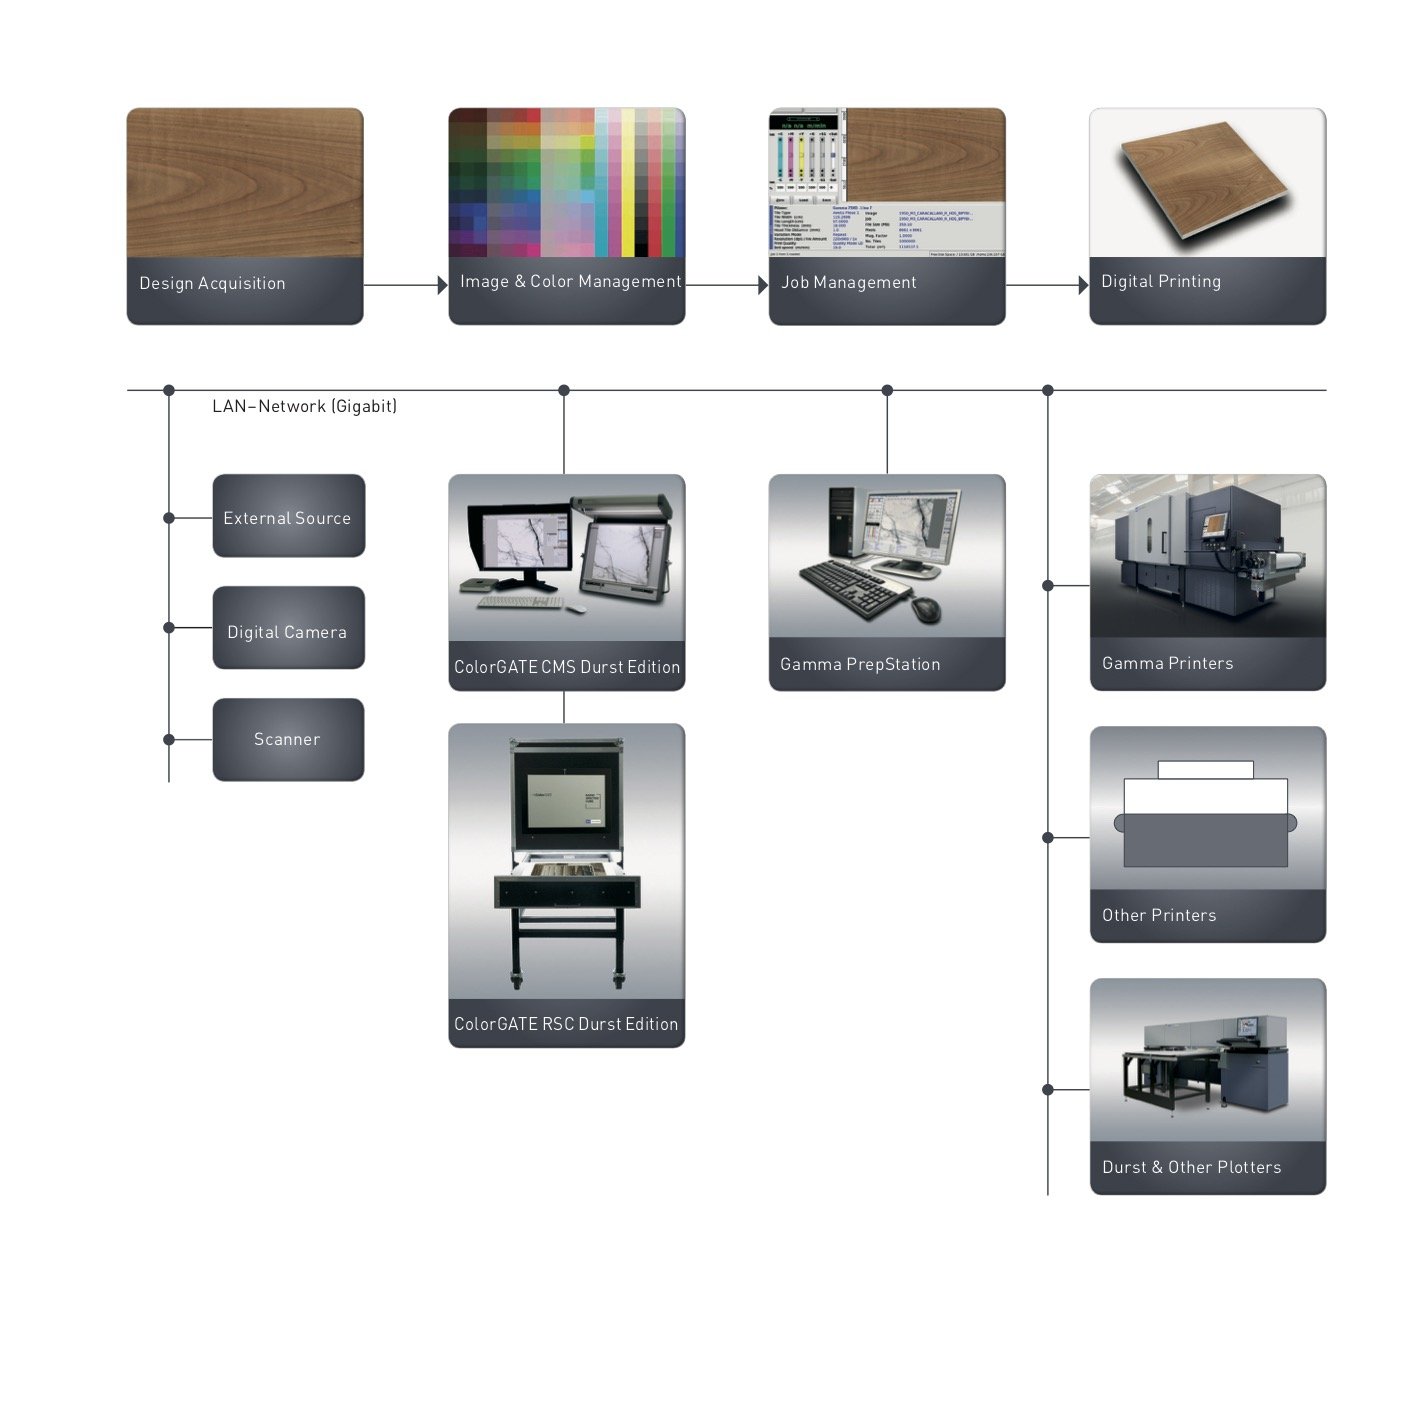 Durst ColorGate Color Management Software